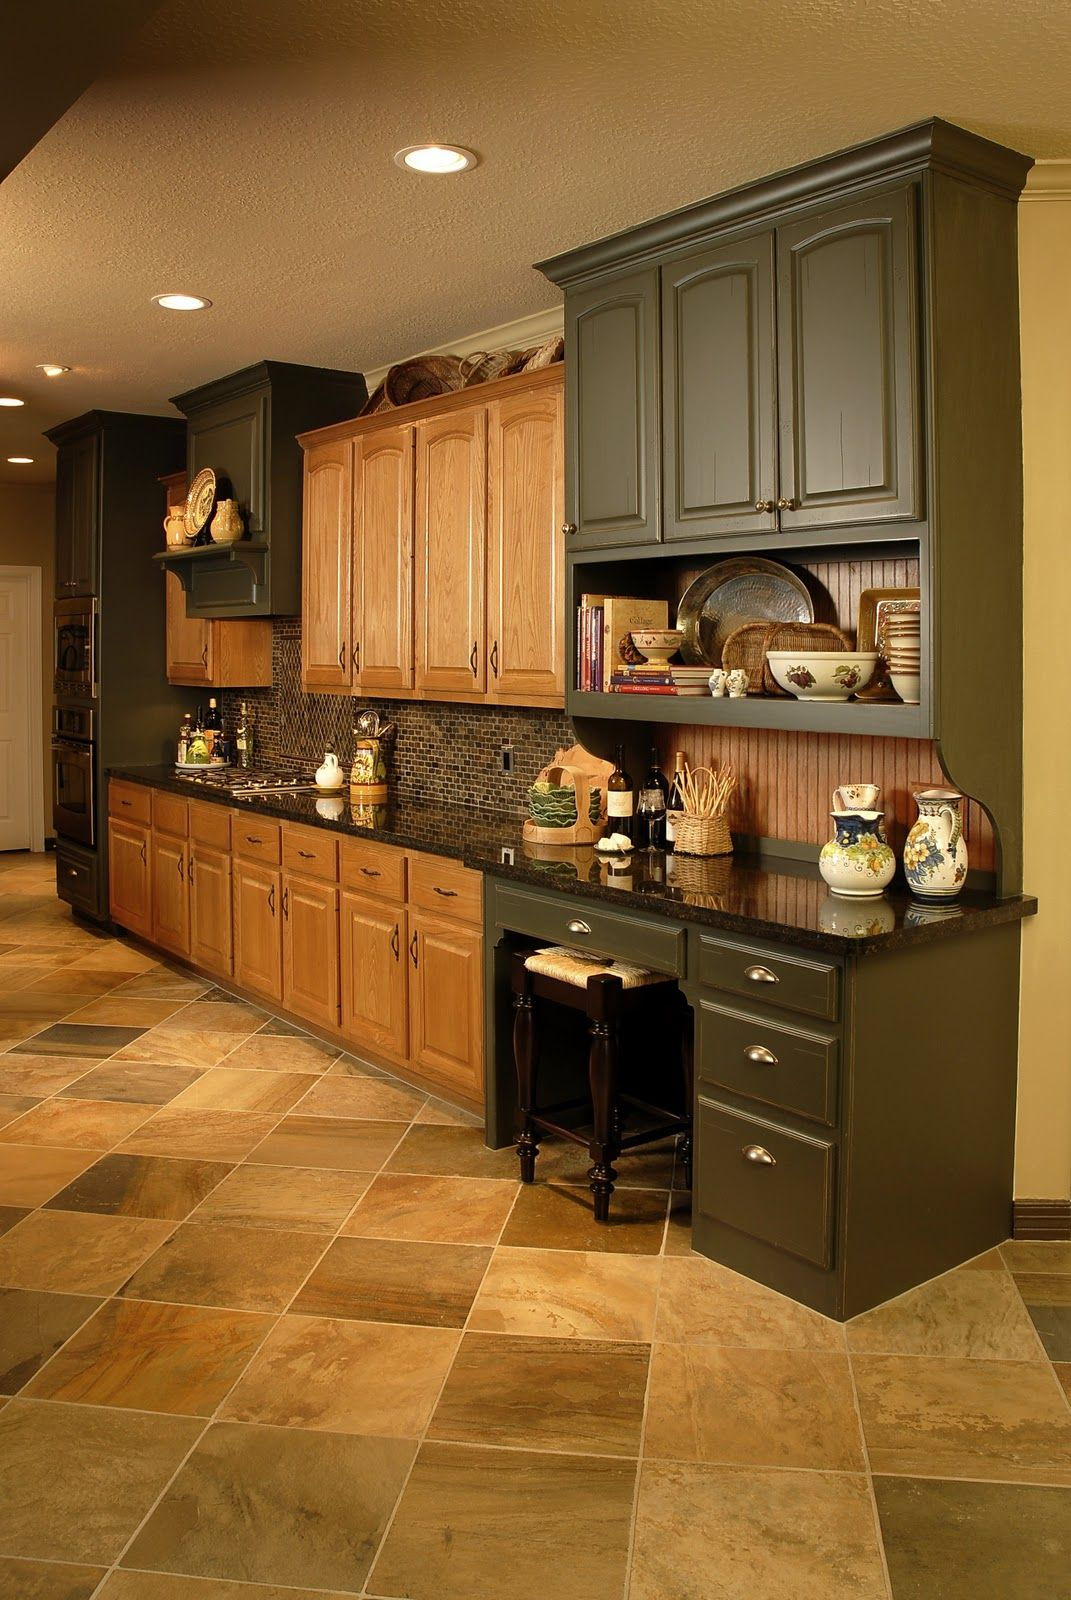 Another view - how to decorate with dated looking oak cabinets ...